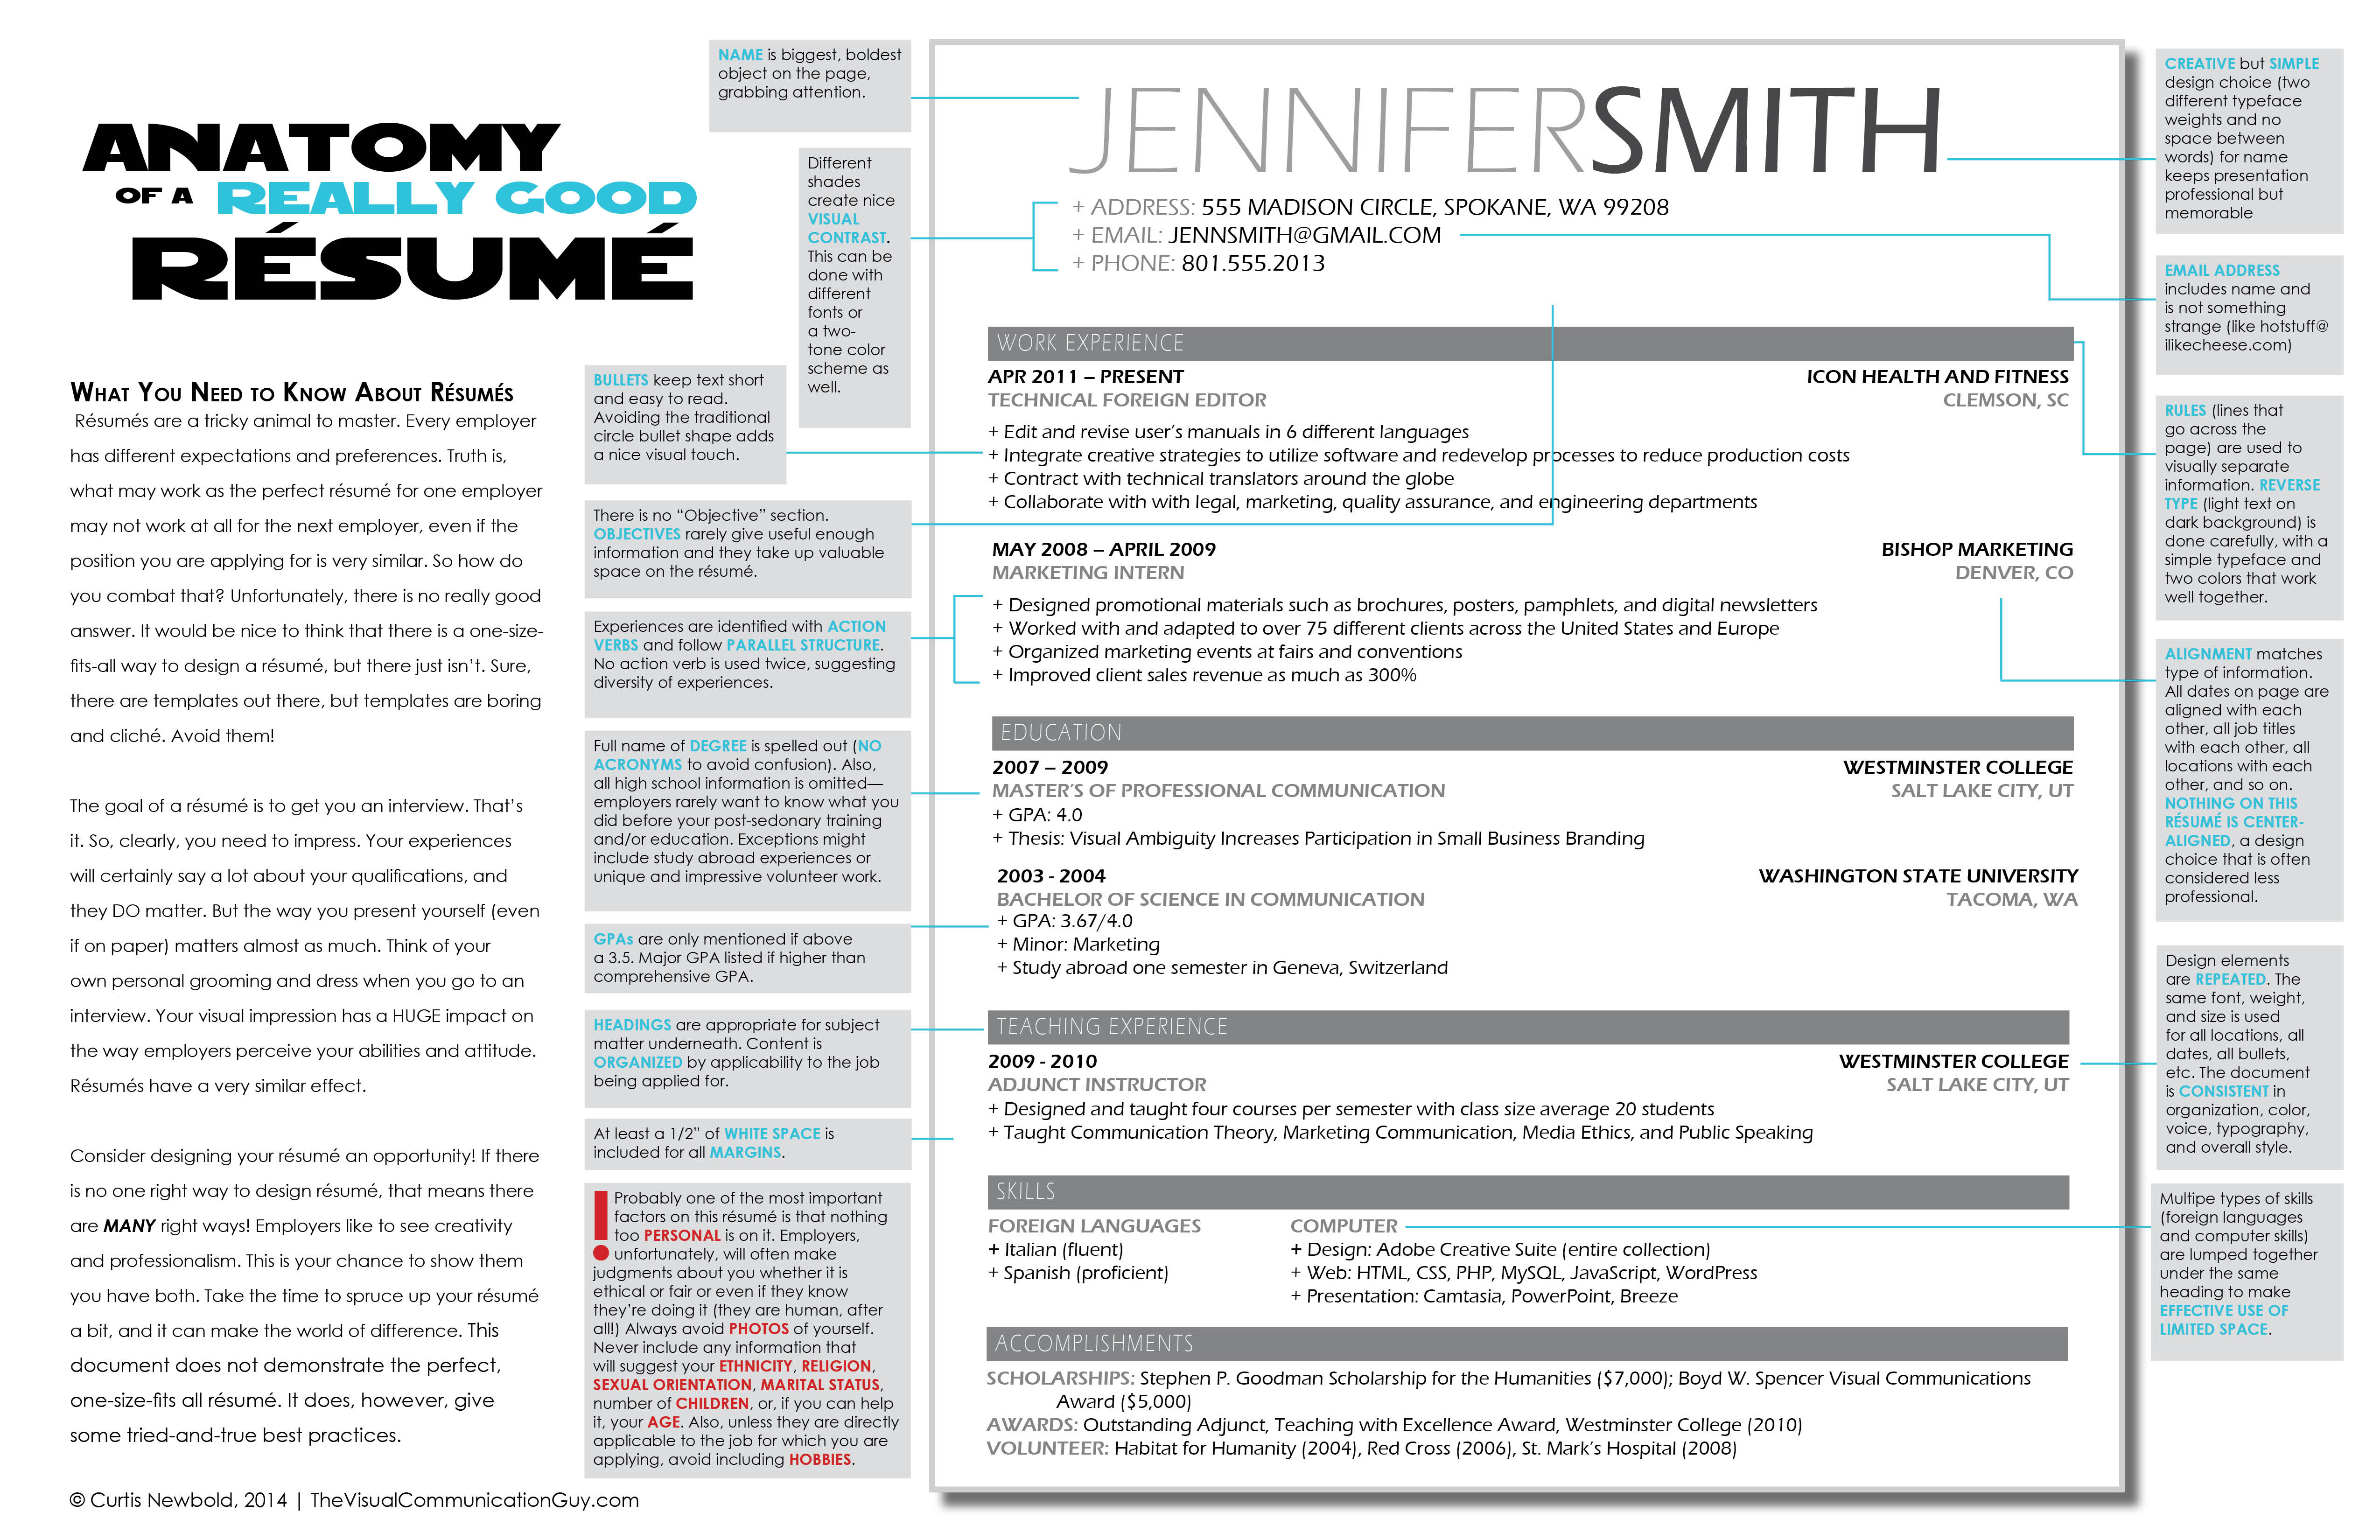 resume punctuation examples